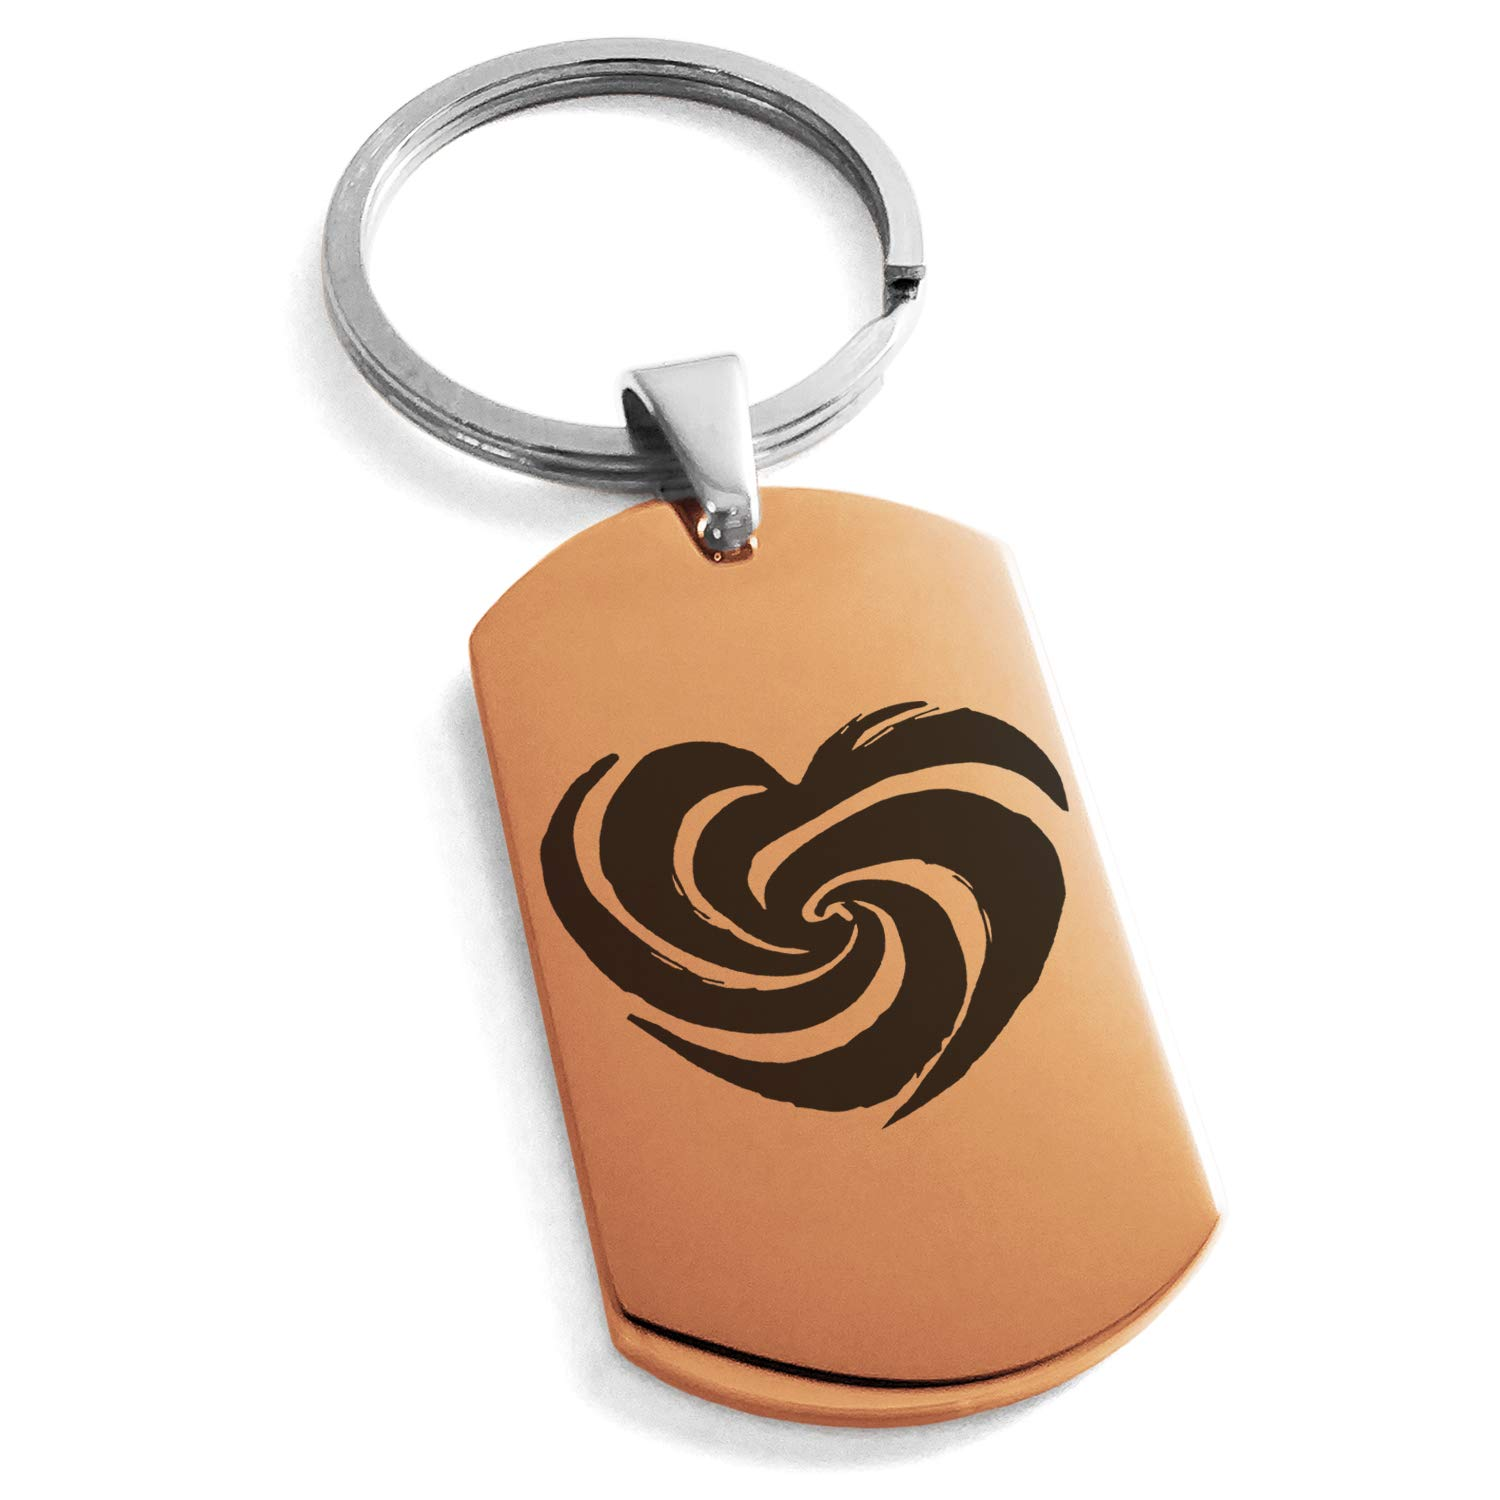 Tioneer Rose Gold Stainless Steel Love Swirl Heart Engraved Dog Tag Keychain Keyring